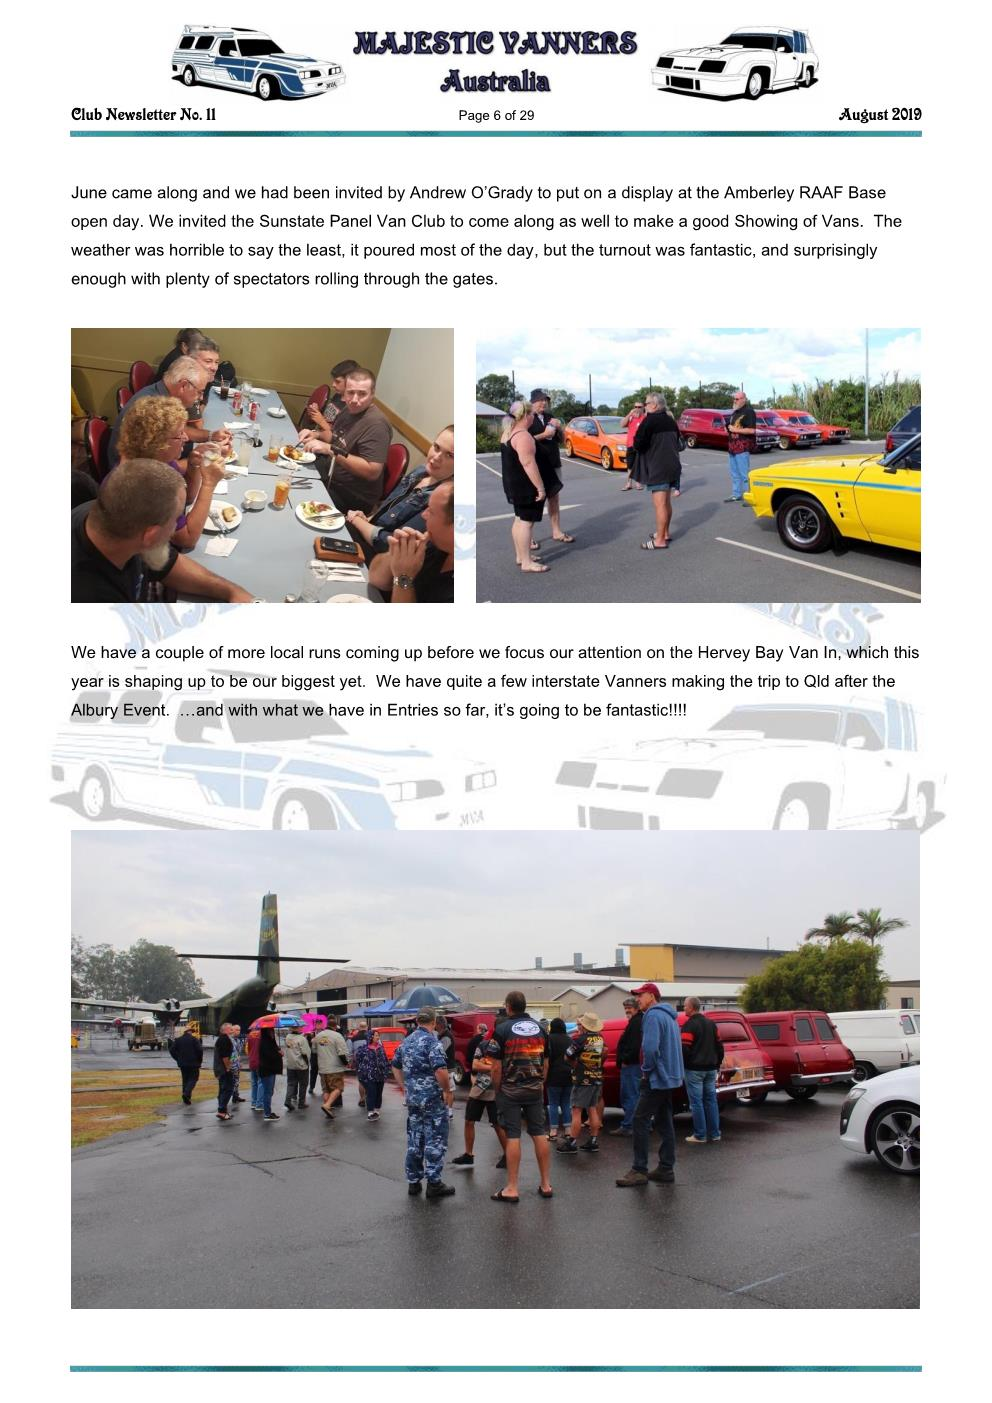 MAJESTIC VANNERS Newsletter Issue No: 11 August 2019 Mv_new44